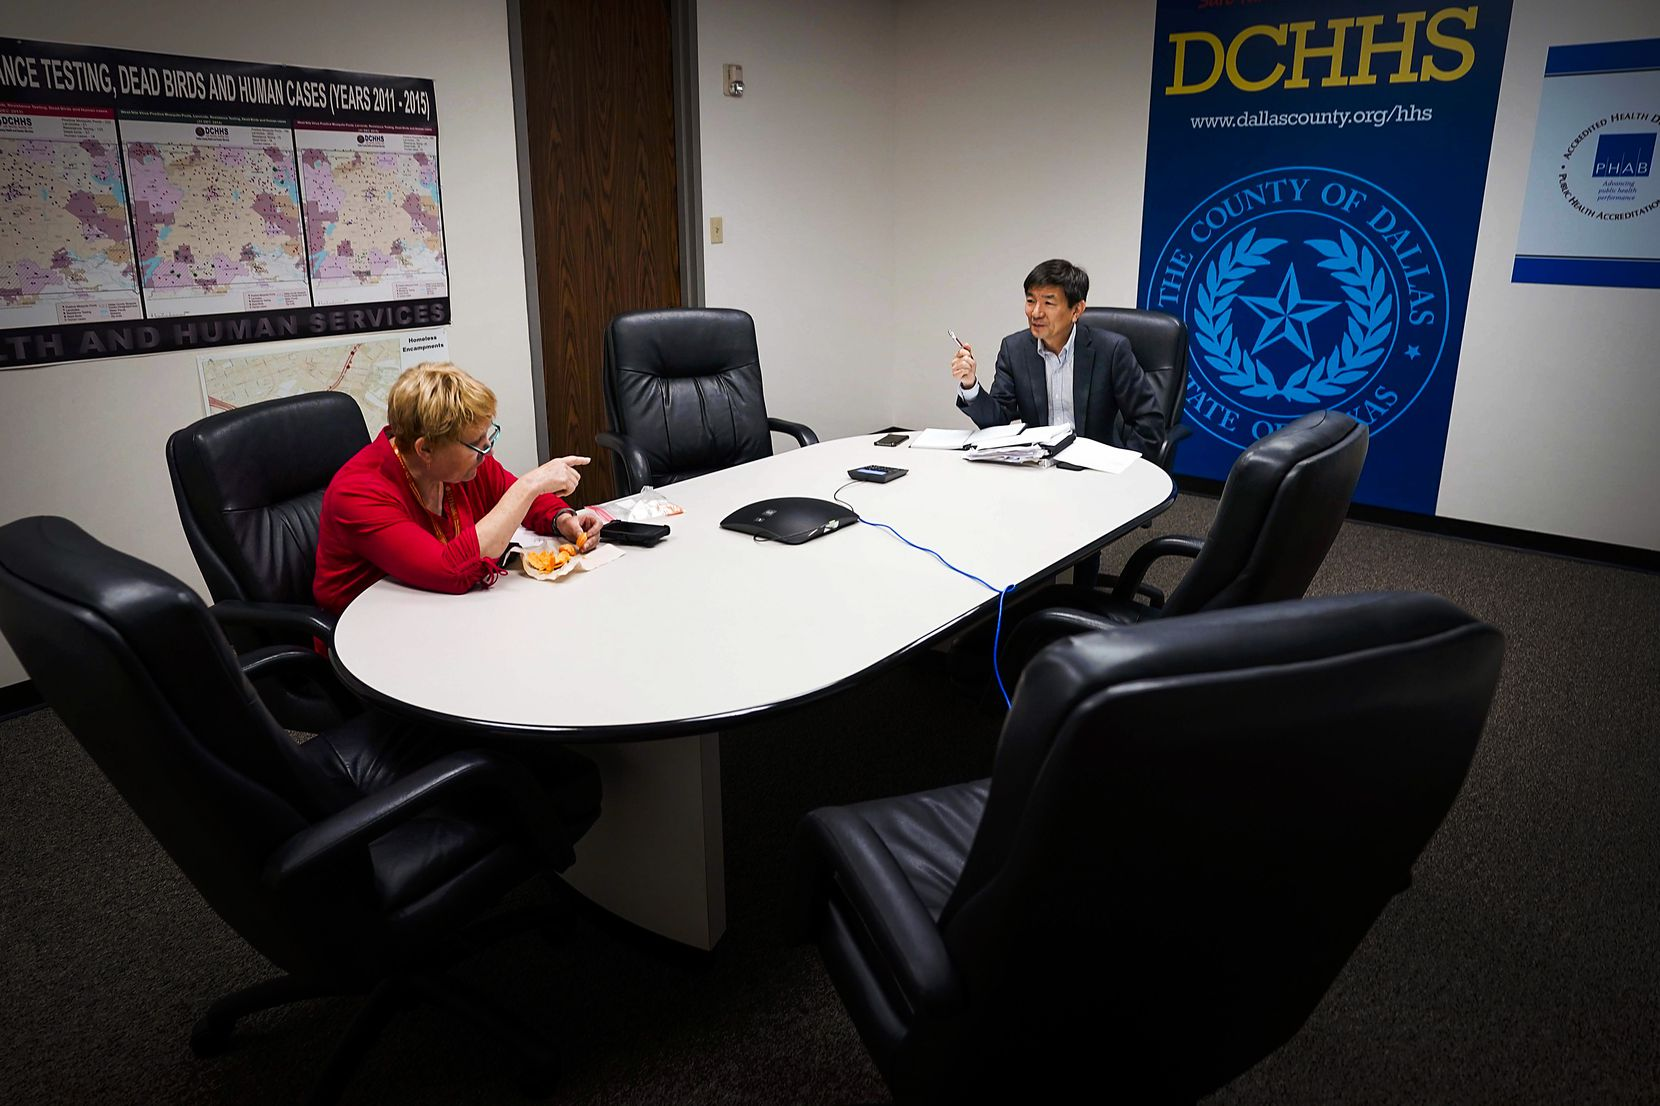 Dr. Philip Huang, Dallas County Health and Human Services director, and Dr. Joann Schulte, deputy health authority and medical director, kept social distance as they met with other staff by conference call at DCHHS offices on April 8, 2020.